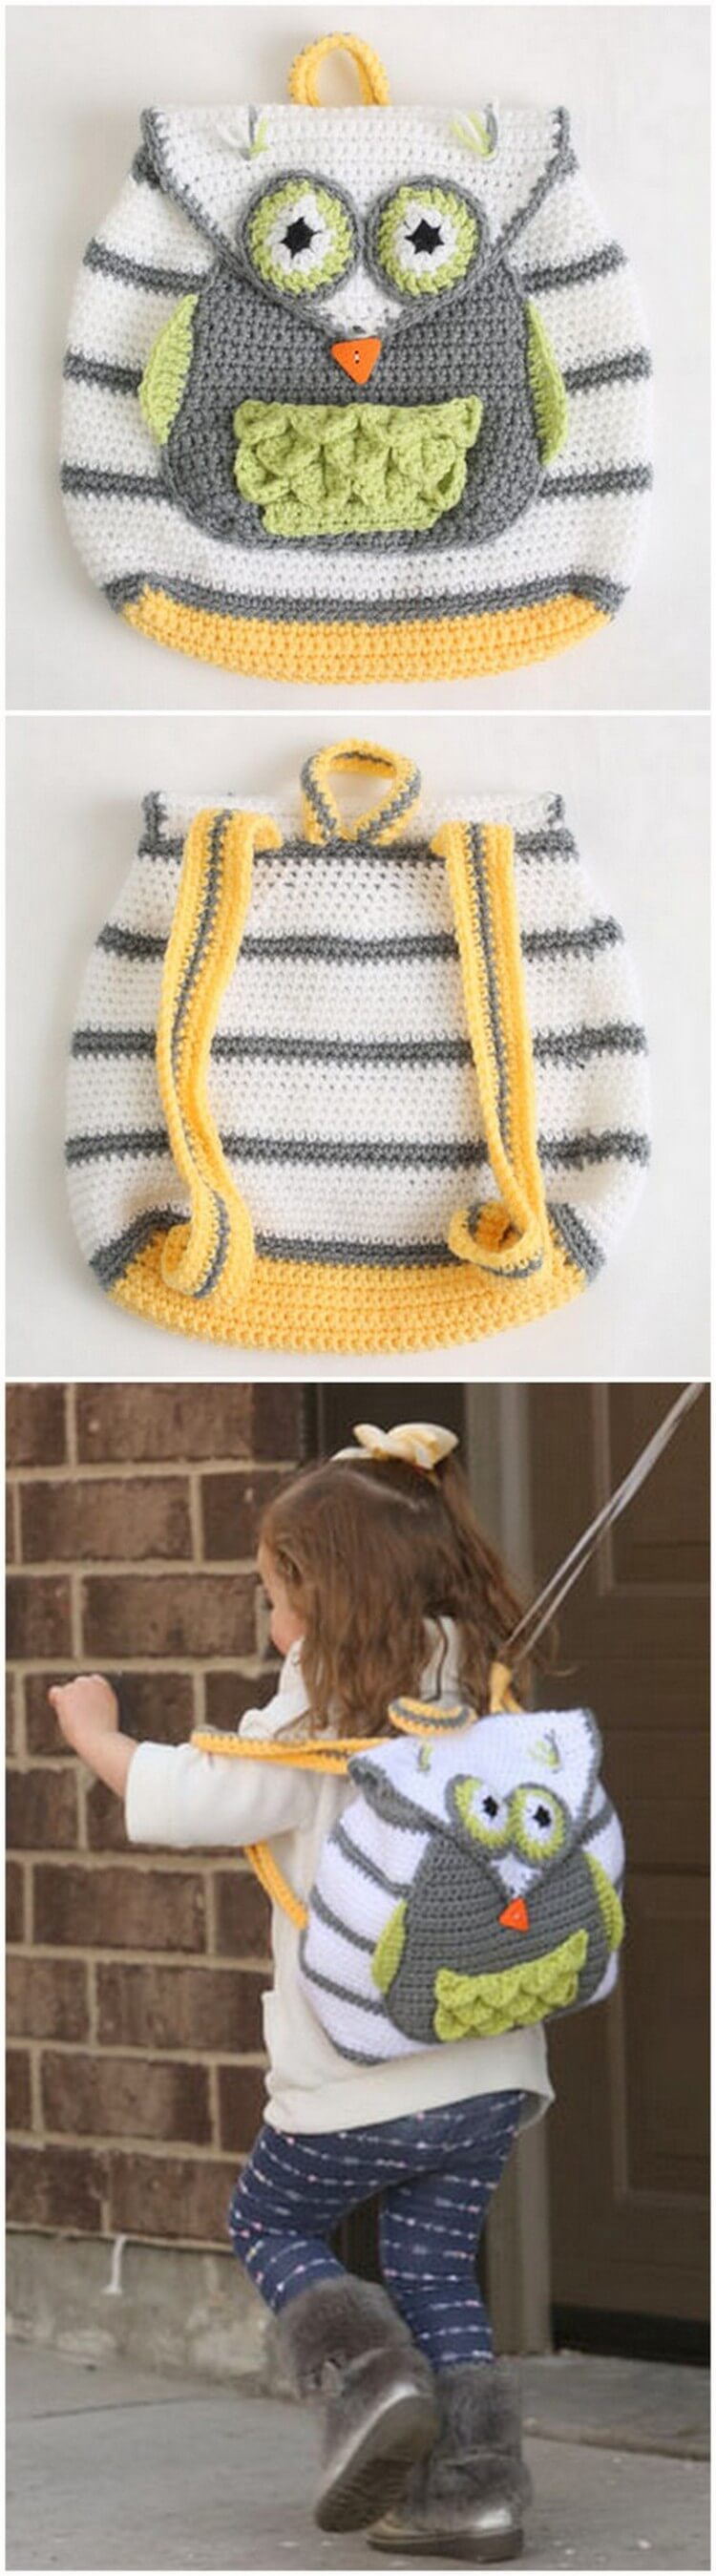 Crochet Backpack Pattern (2)